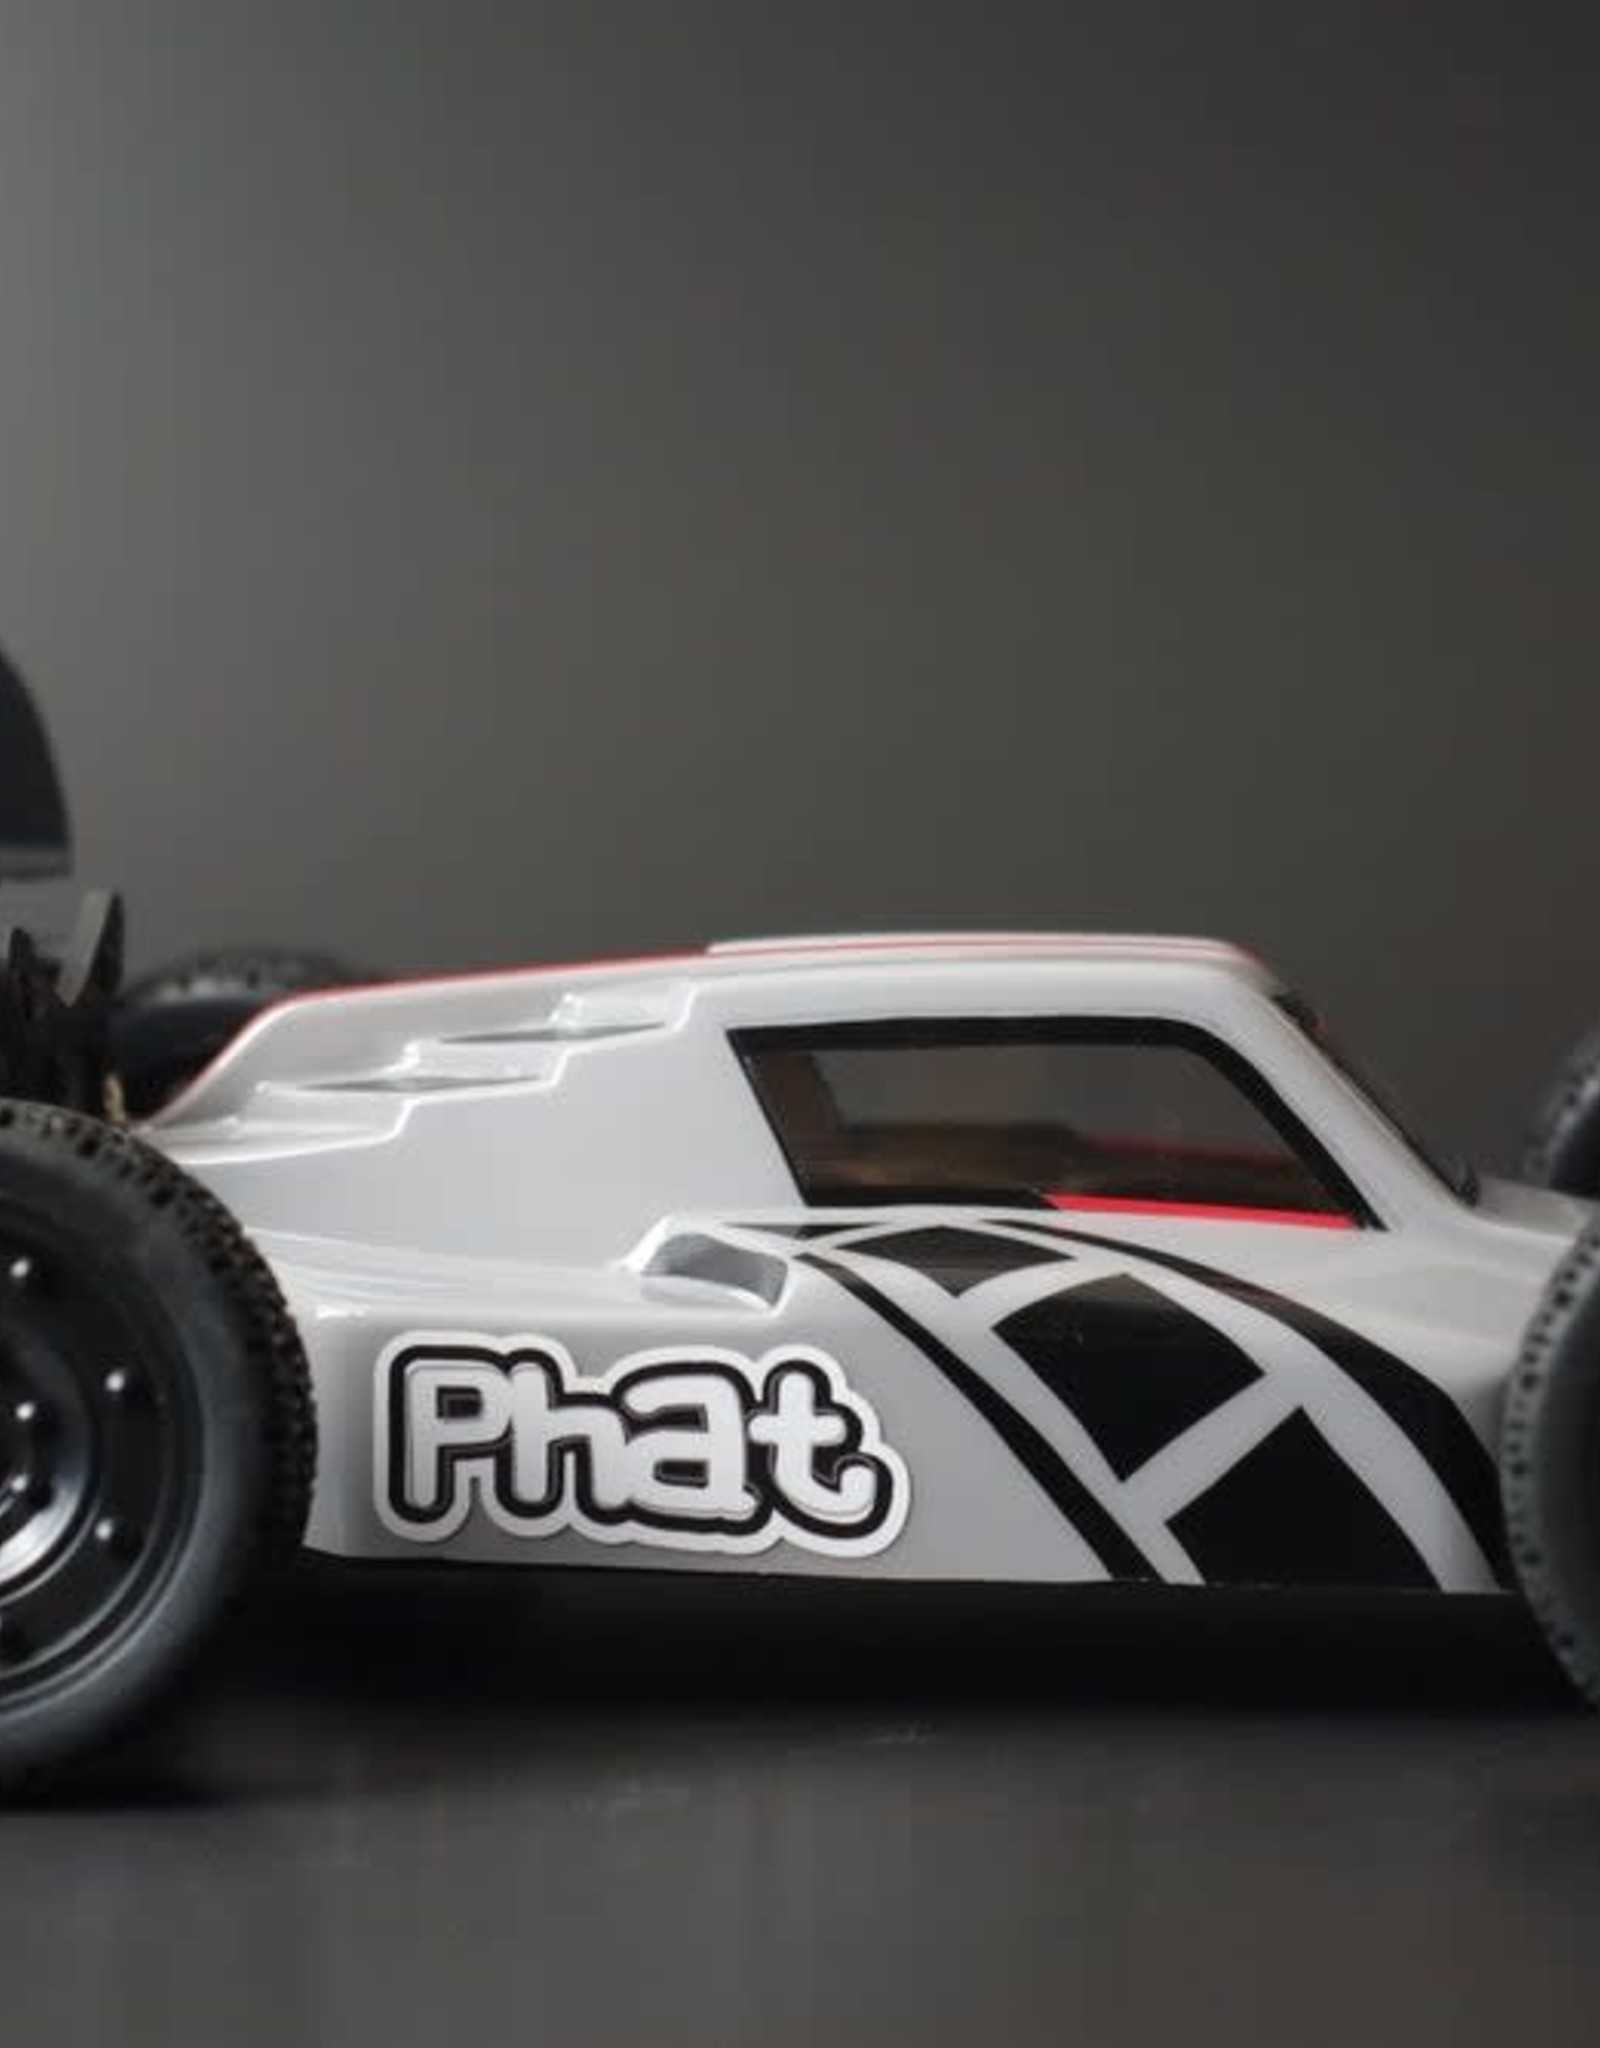 Phat Bodies PHAT BODIES 'ATAK' FOR LC RACING EMB-1 TEAM ASSOCIATED REFLEX 14B AND LOSI MINI 8IGHT